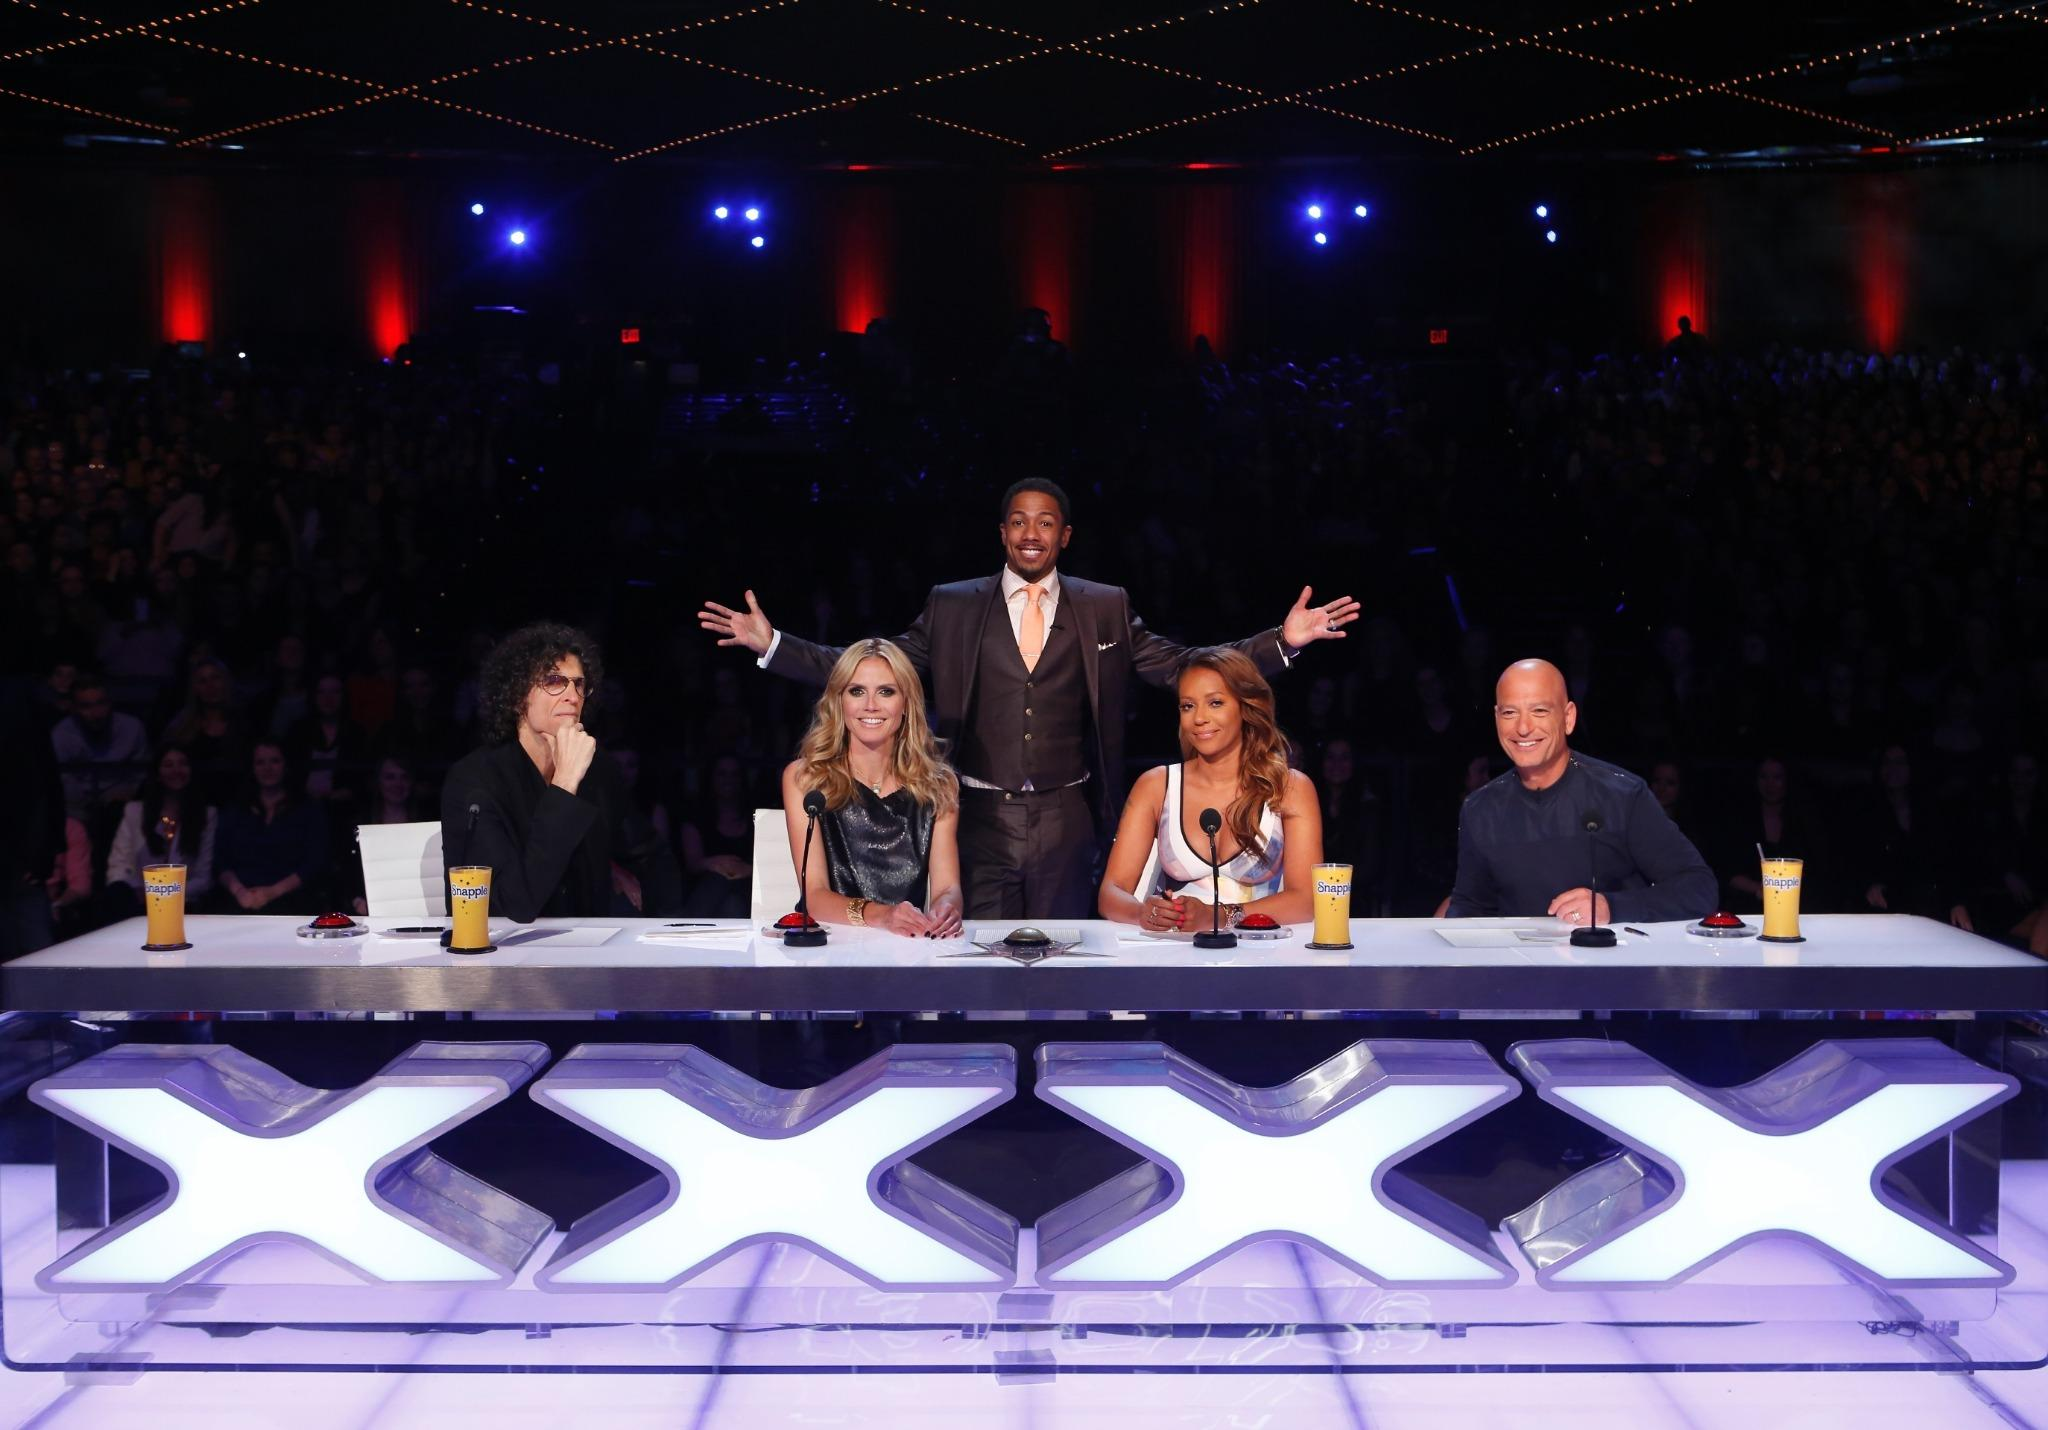 5 days til @nbcagt live shows! Can't wait to be back with @HowardStern @OfficialMelB @howiemandel & @NickCannon! #AGT http://t.co/6DcD5BvDaI